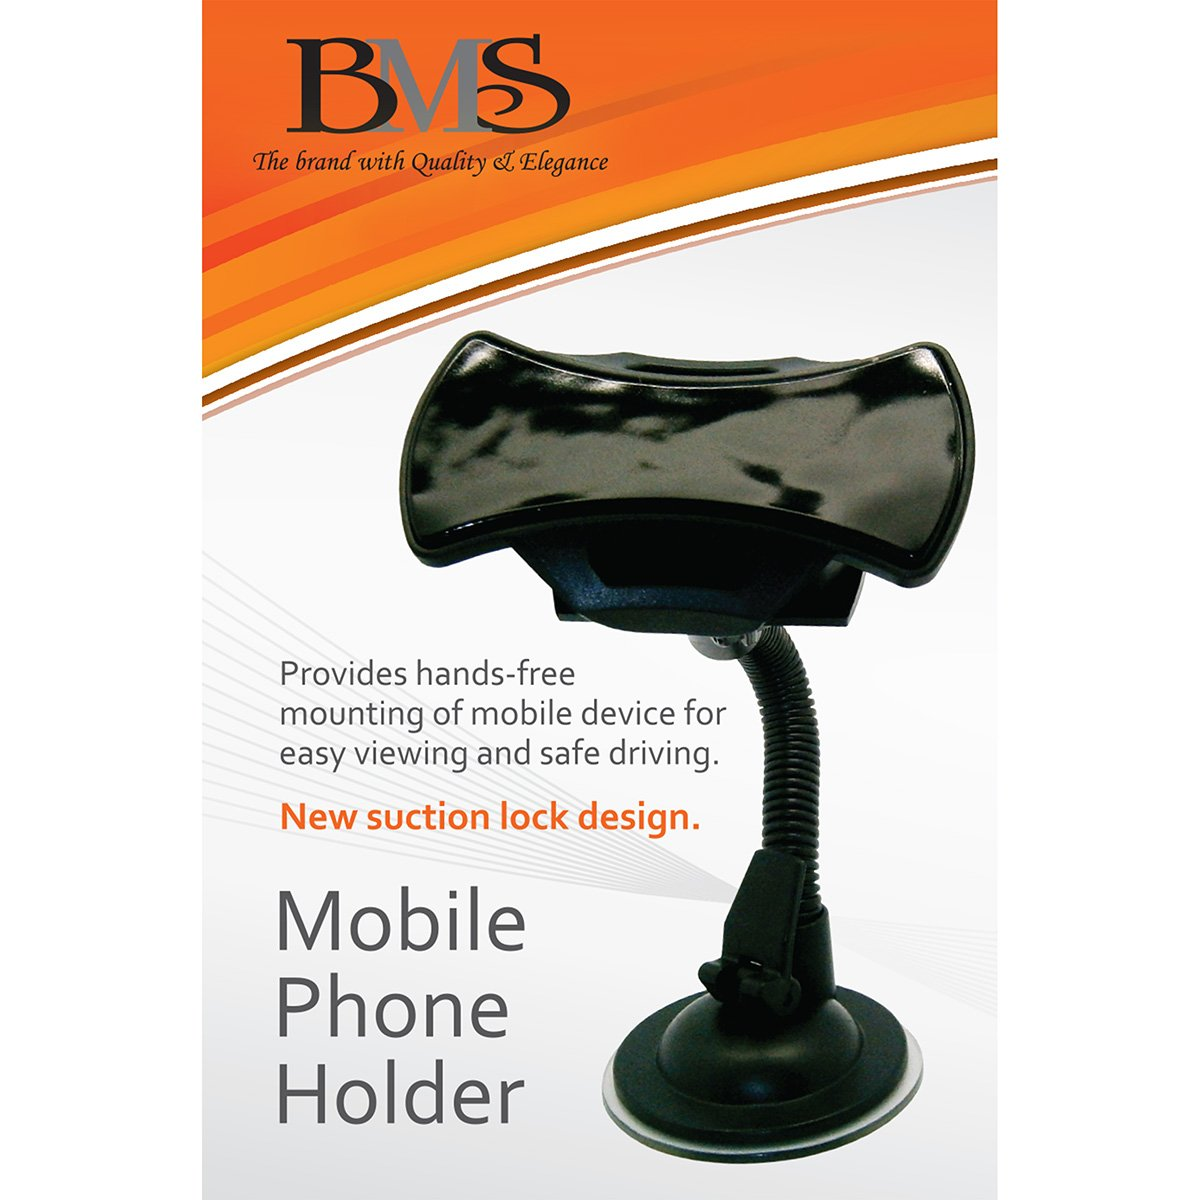 Extended Mobile Phone Holder Valuezy Australia